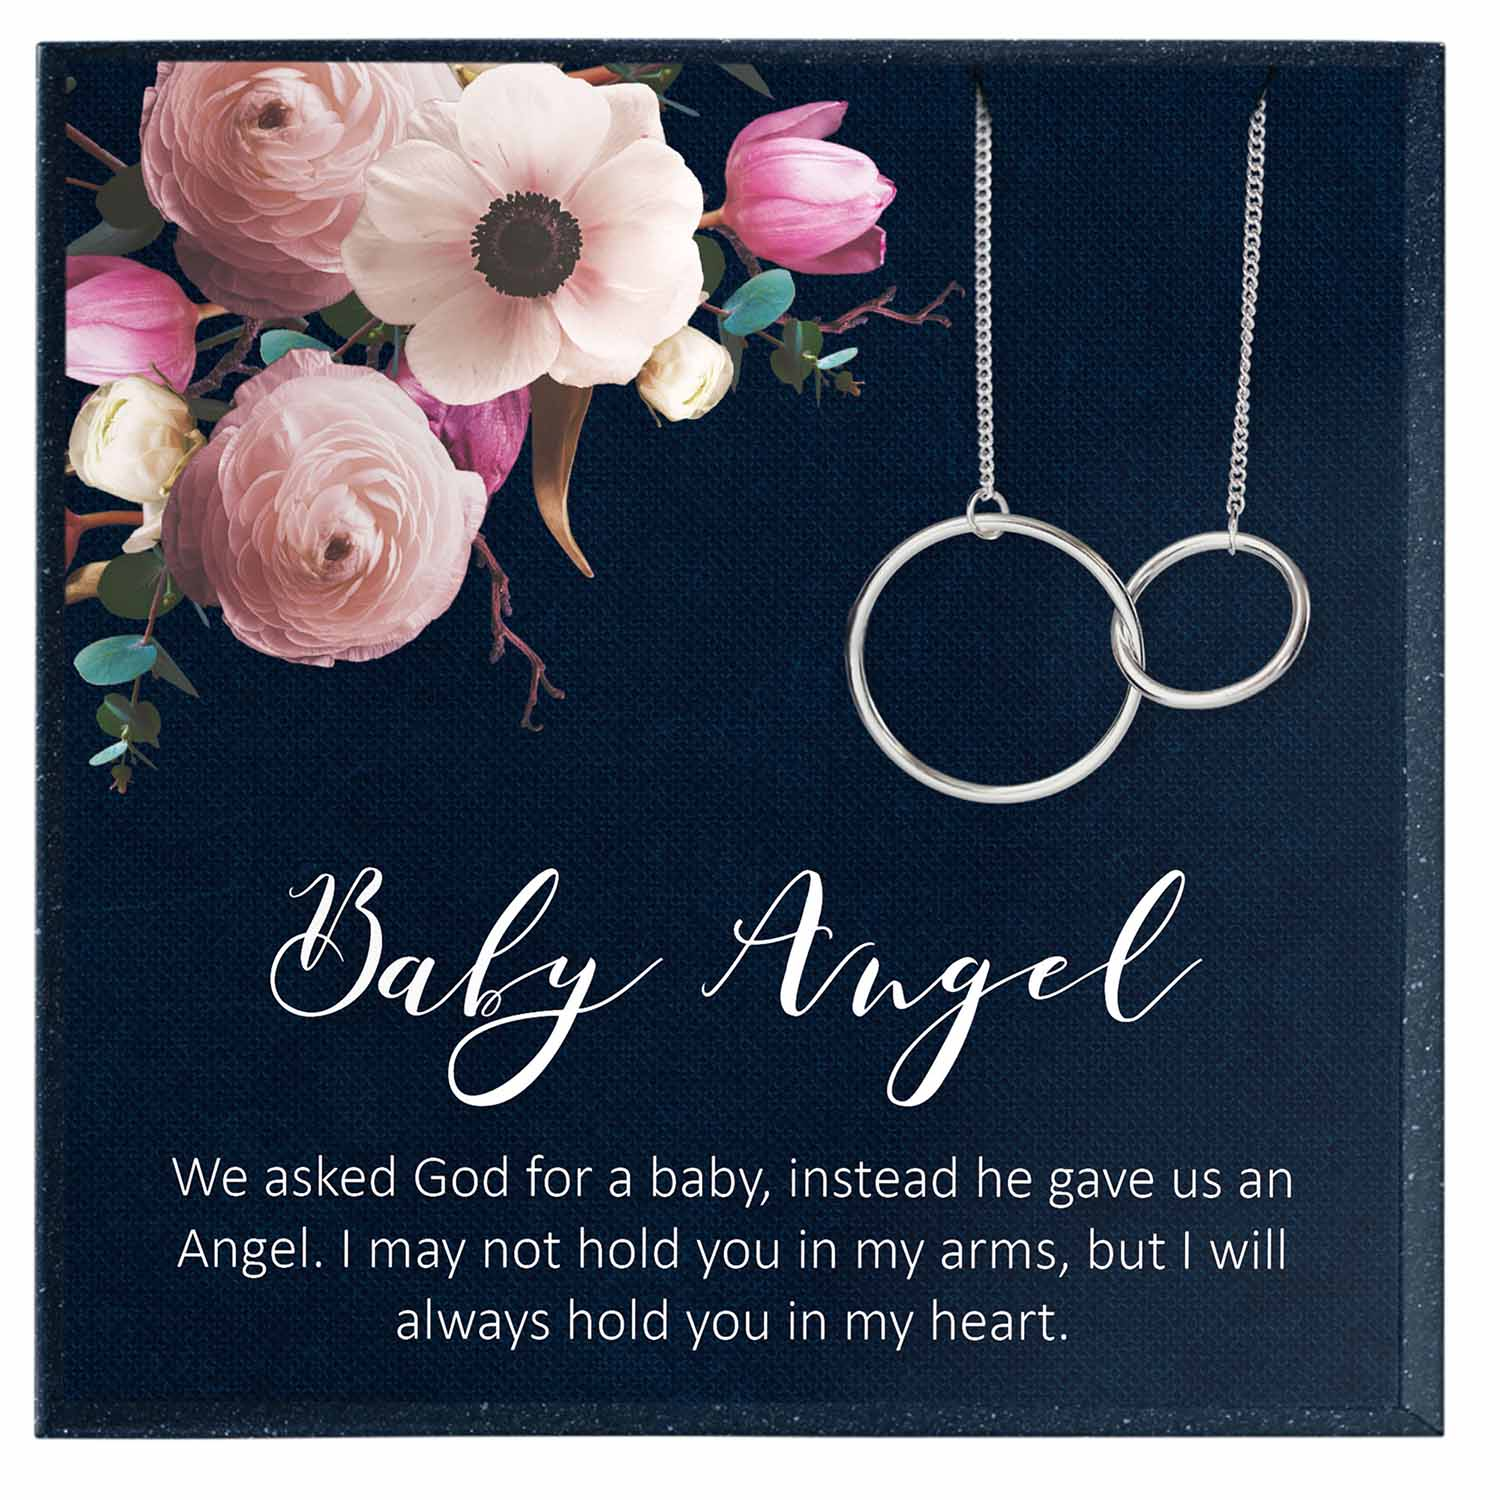 Baby Angel Gift for Miscarriage